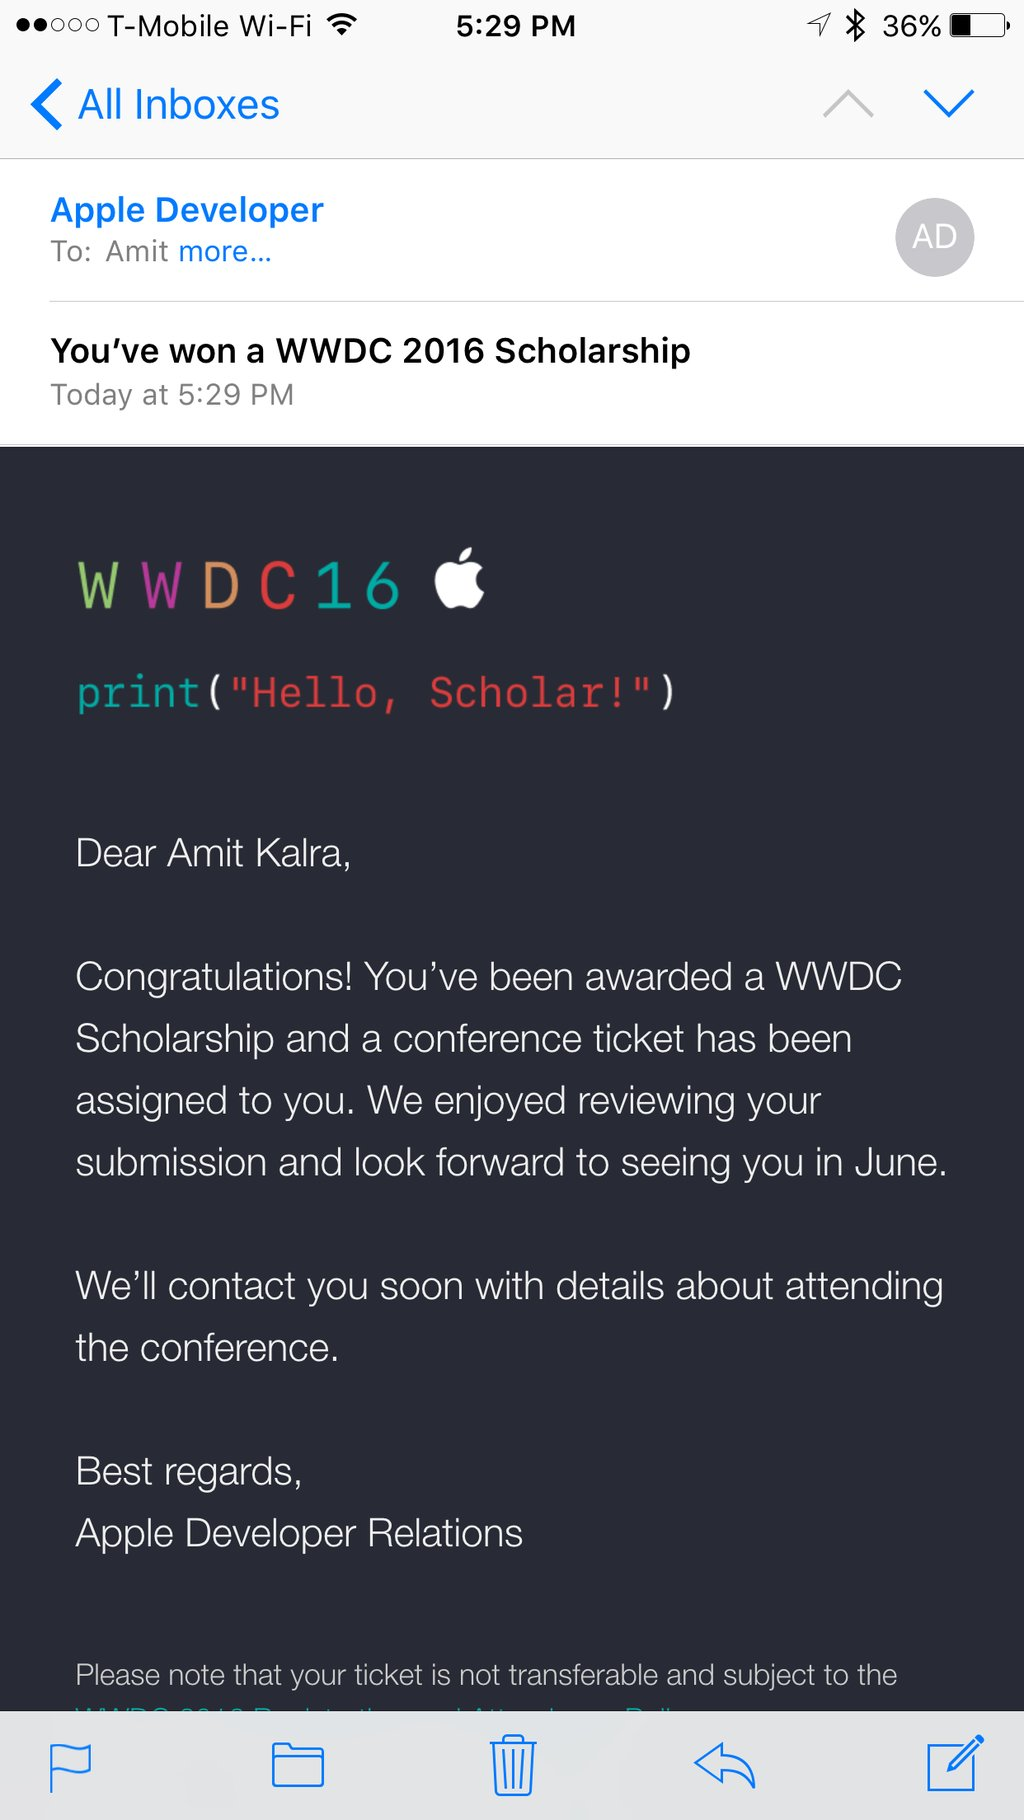 wwdc_ticket_stipendium2016